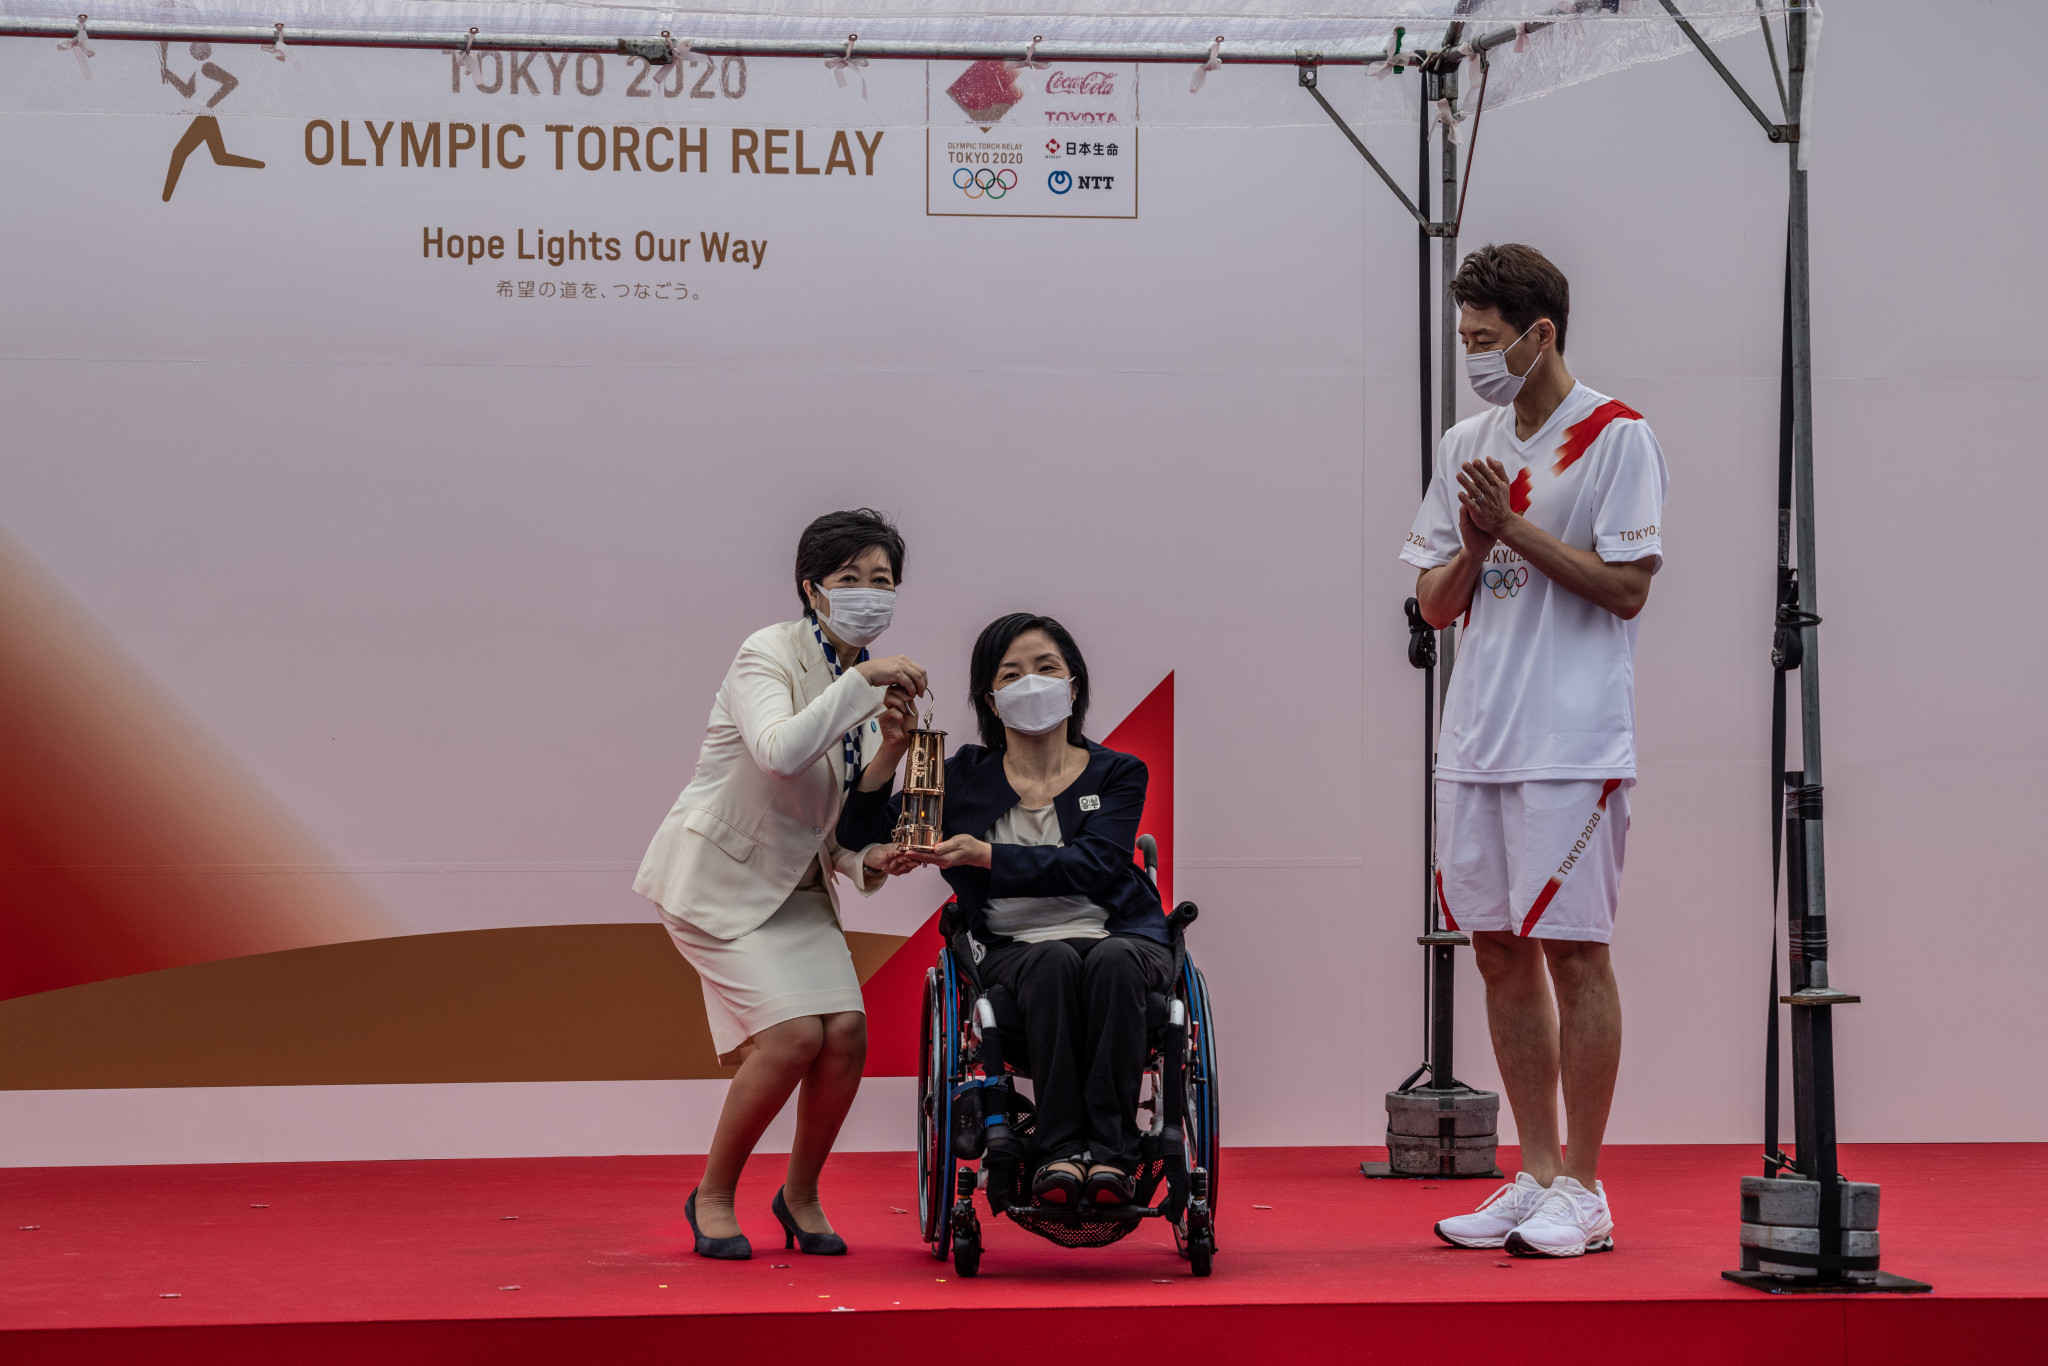 Subdued Tokyo leg of Olympic Torch Relay begins away from public